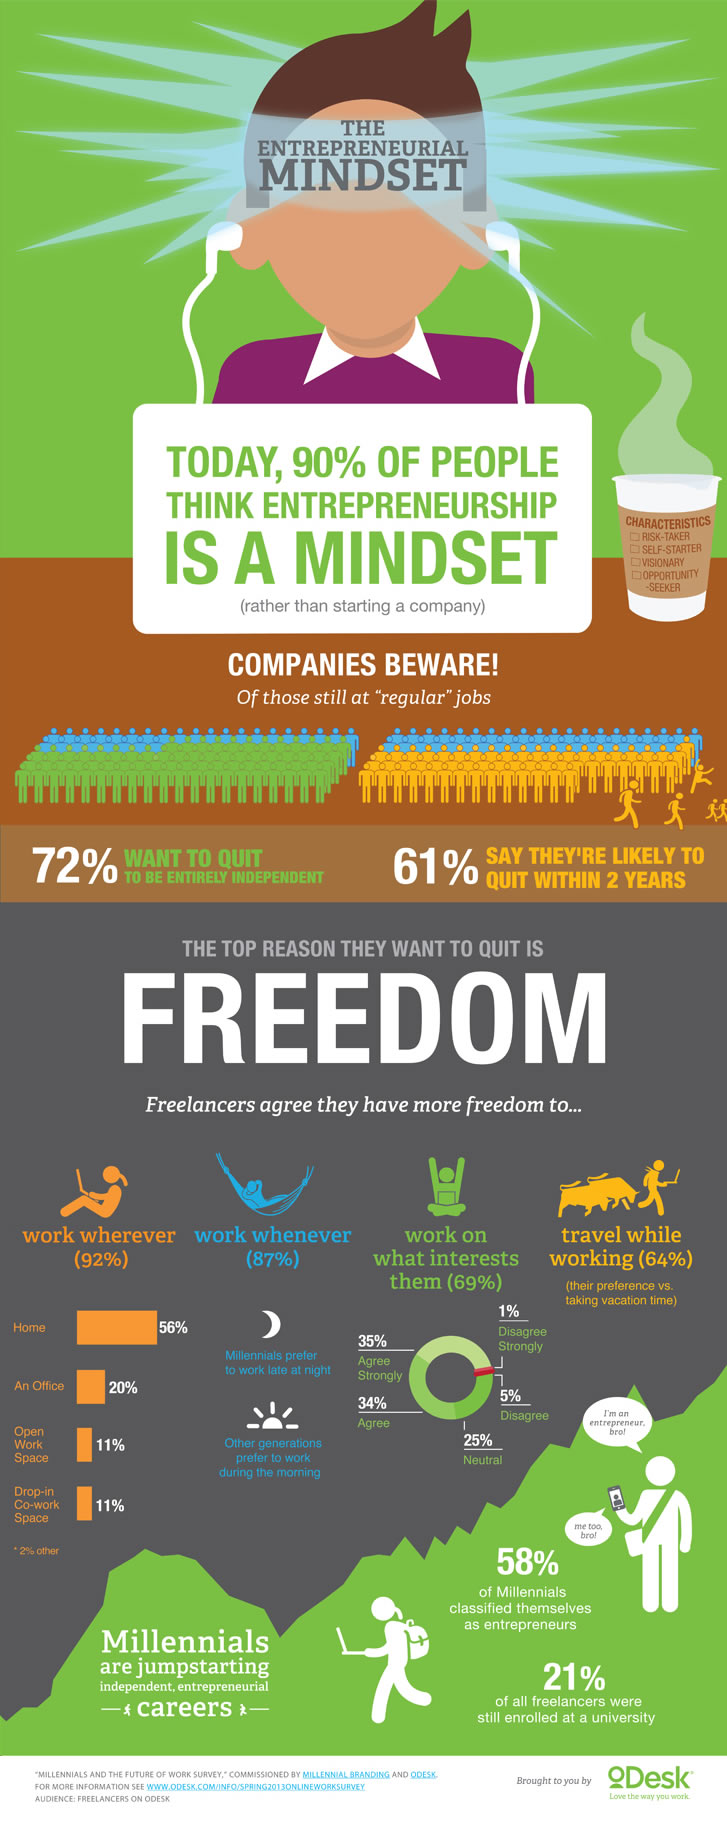 odesk-infographic